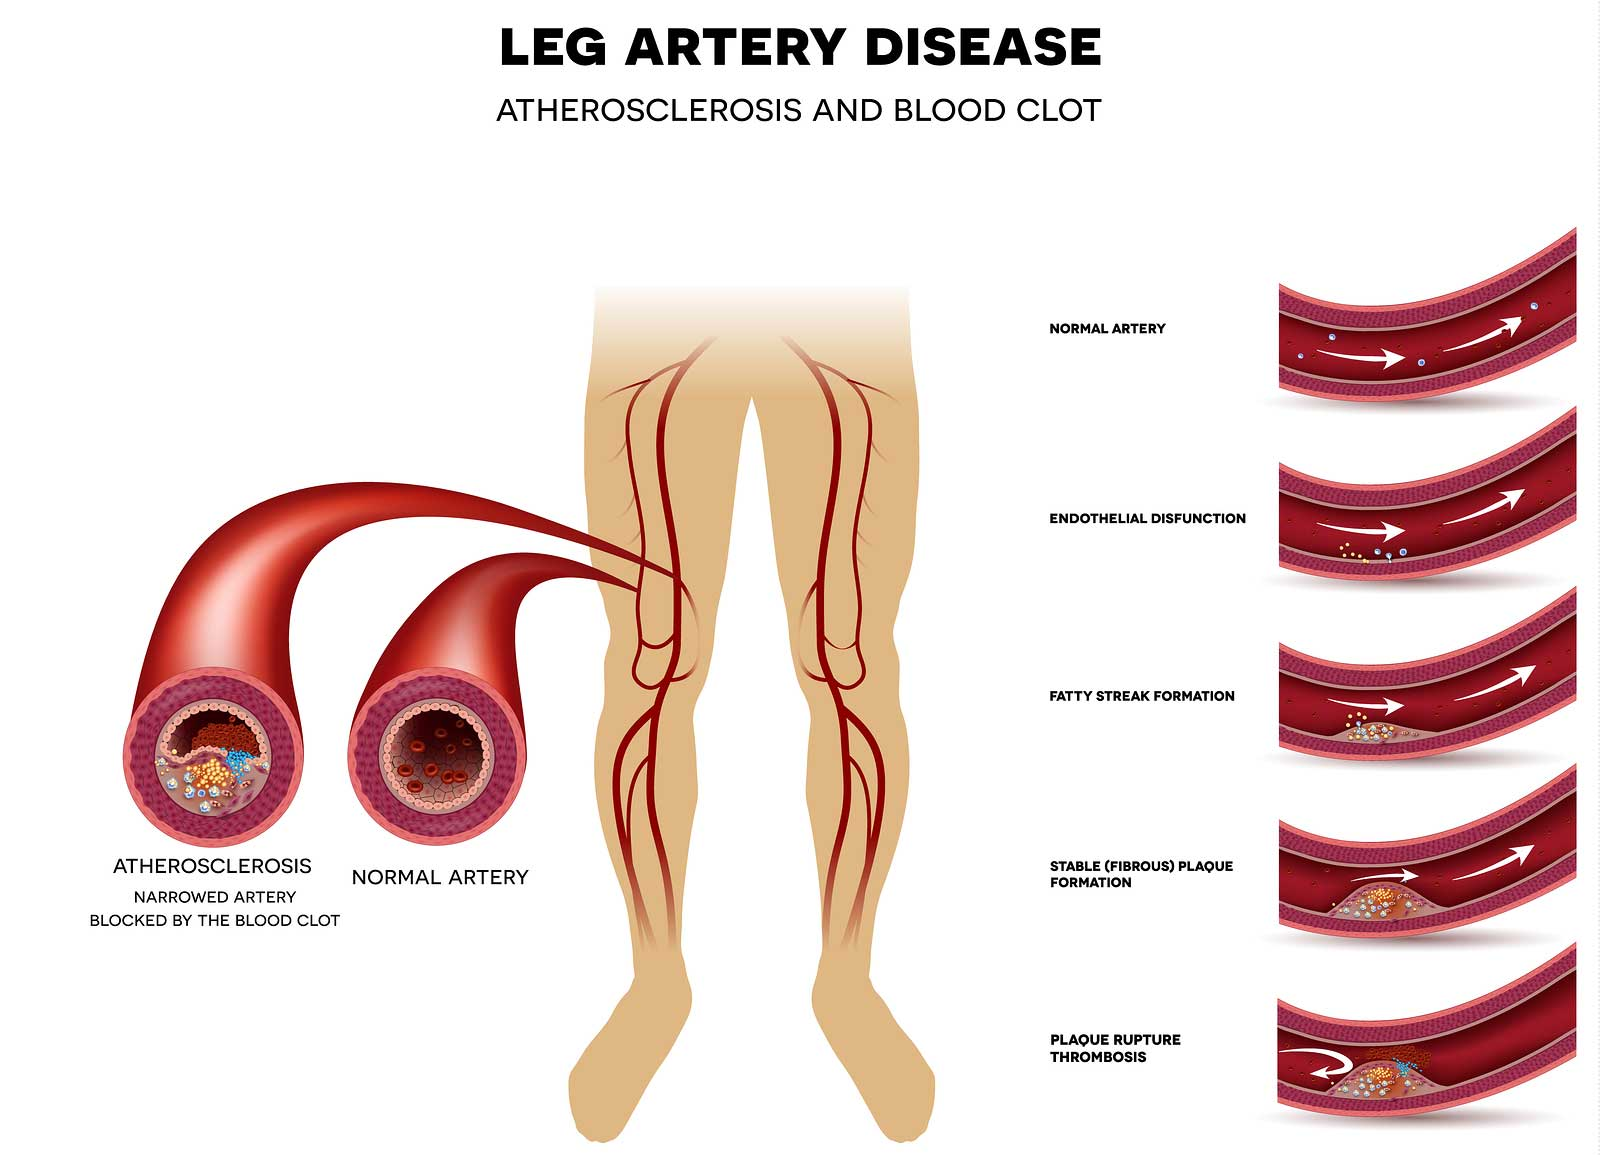 graphic of leg artery disease